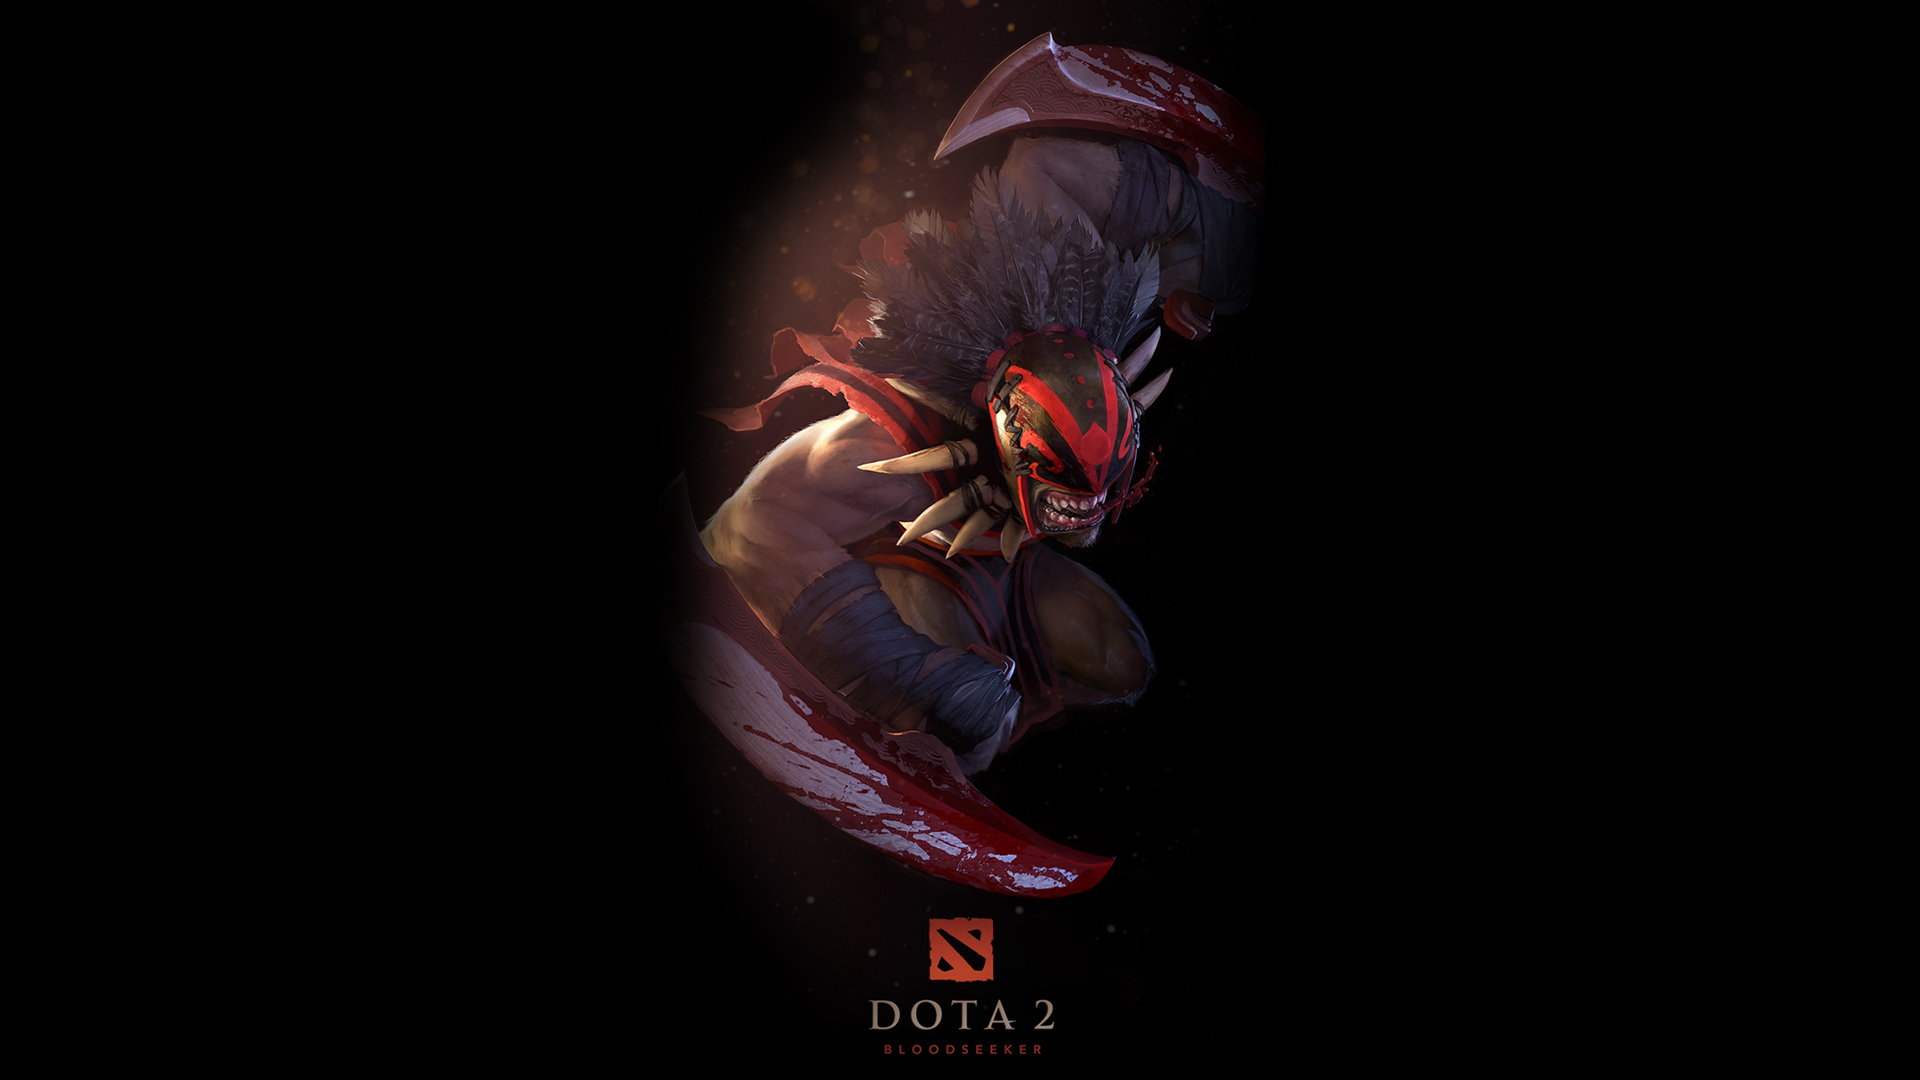 Dota 2-Bloodseeker Full HD Wallpaper and Background Image ...